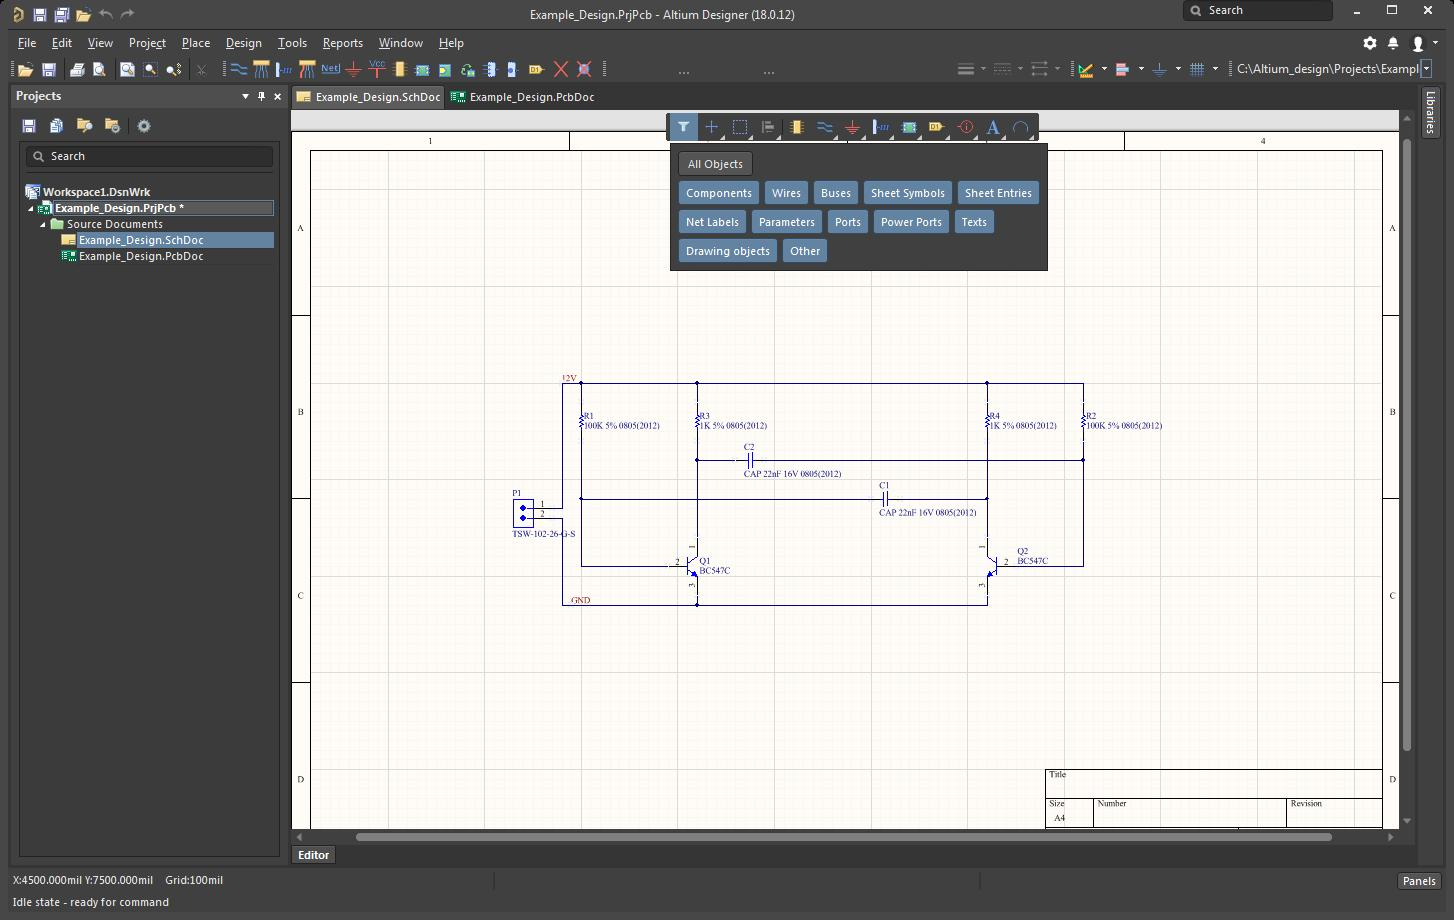 Picture of AD session showing the select filter menu in the schematic